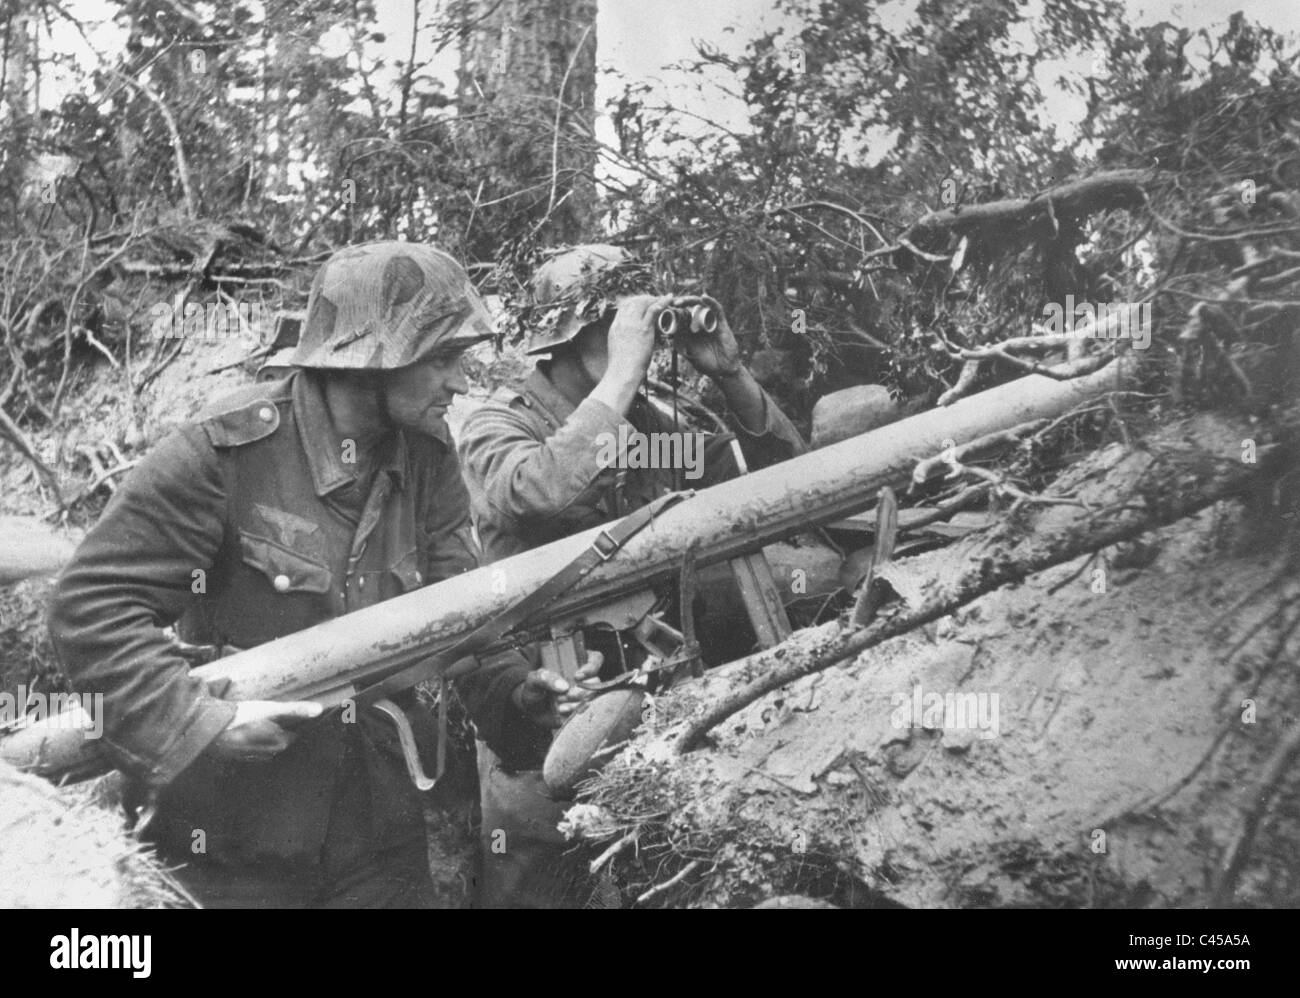 German soldiers during fights in the northern sector of the Eastern Front, 1944 - Stock Image